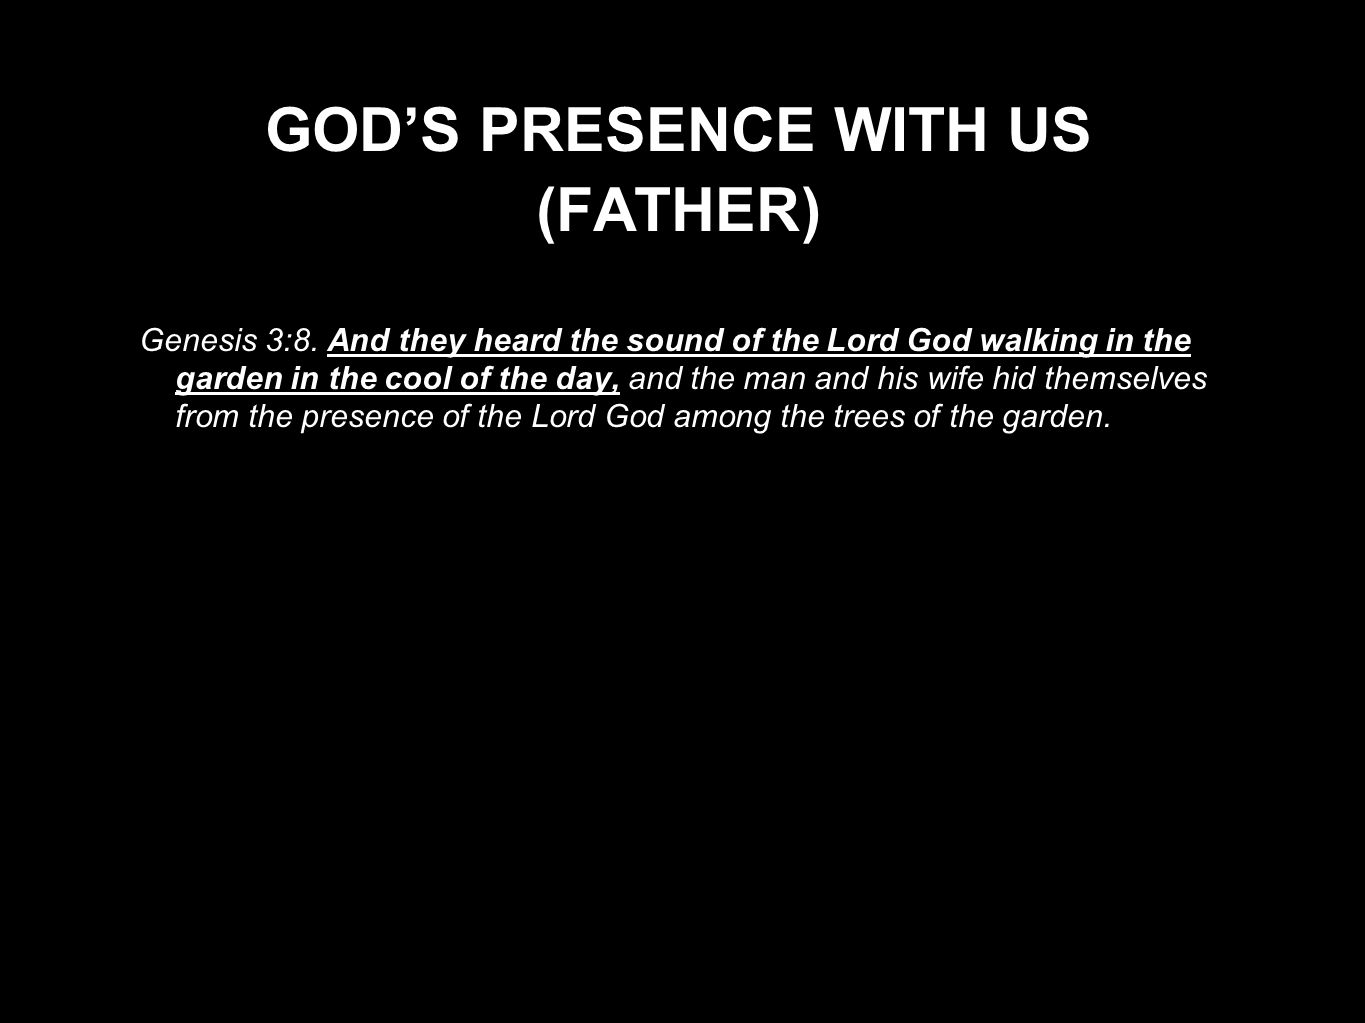 GOD'S PRESENCE WITH US (FATHER)